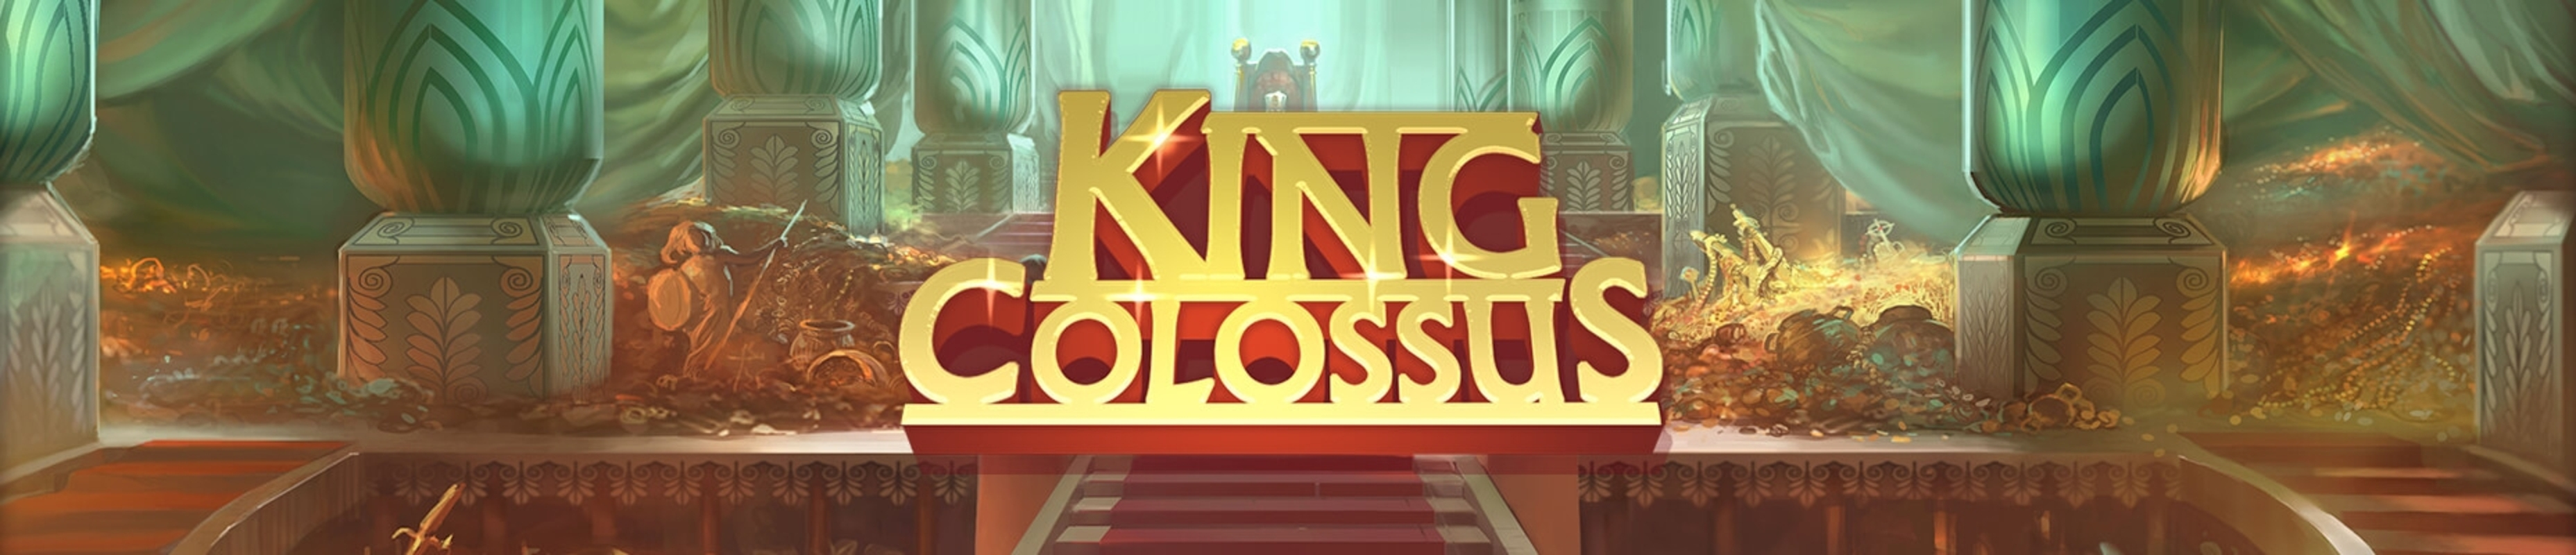 King Colossus Online Slot Demo Game by Quickspin